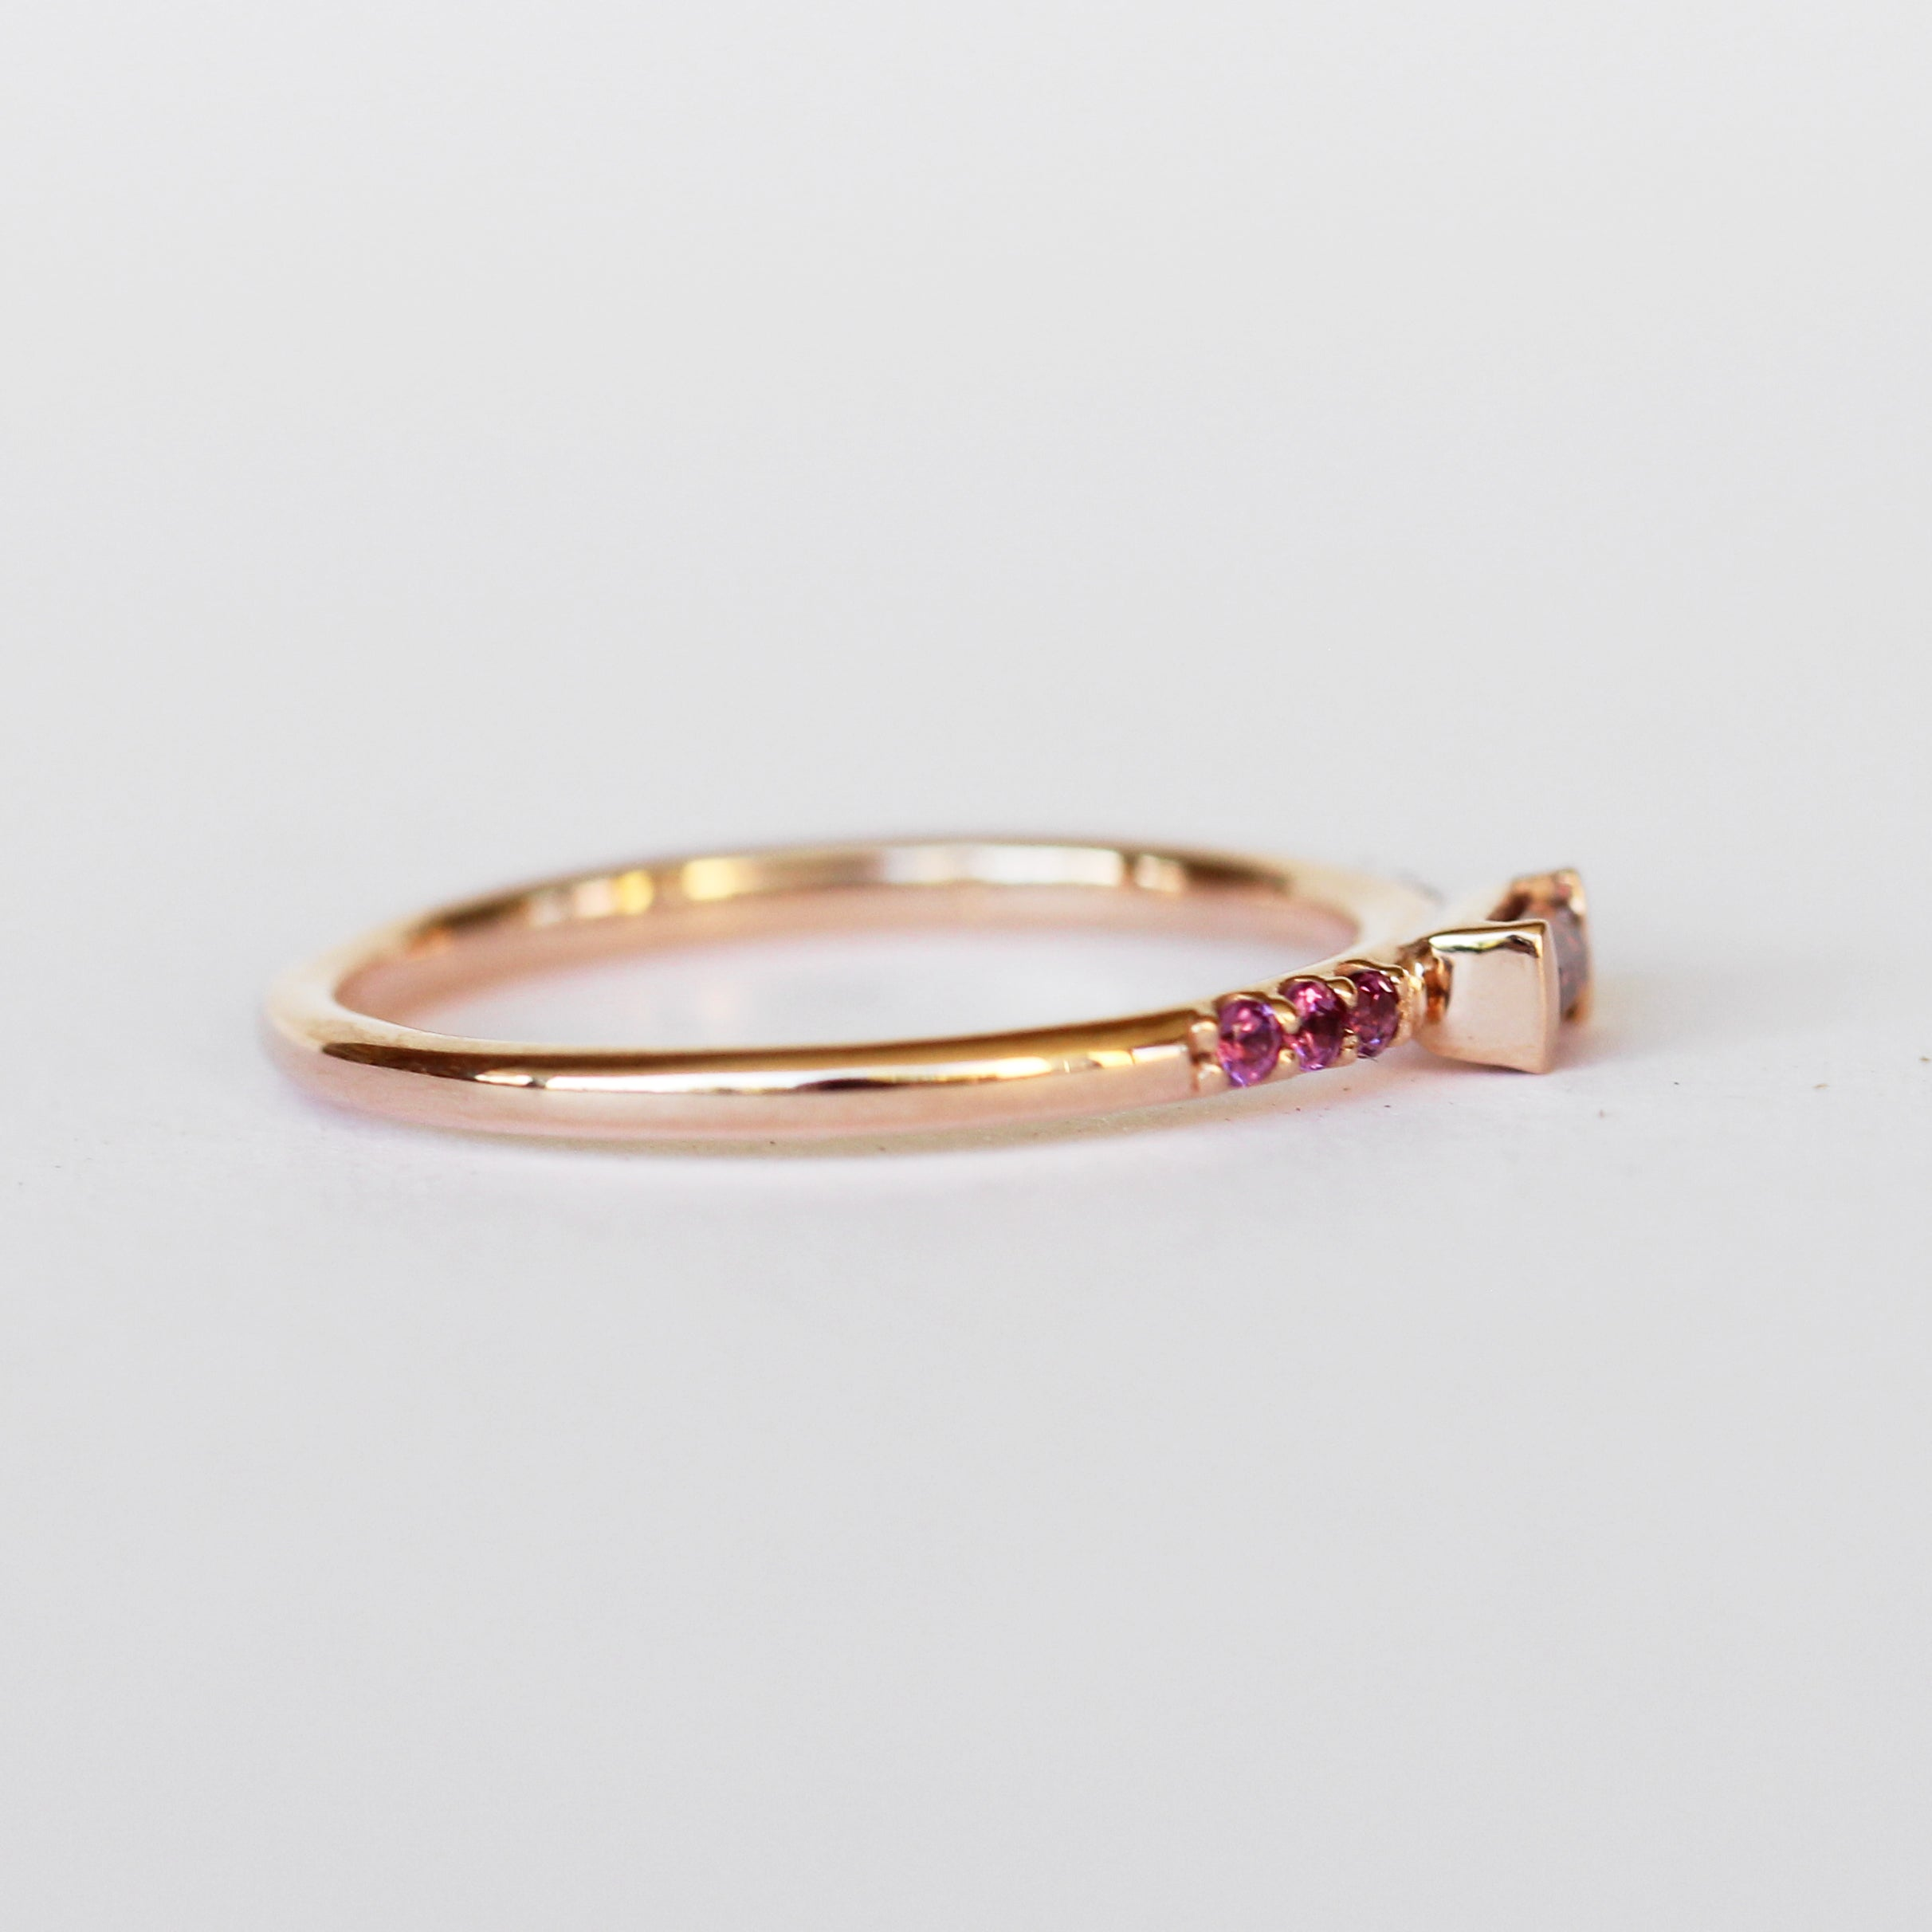 Summer Stacking Ring with Garnet and White Diamonds in 10k Rose Gold - Ready to Size and Ship - Salt & Pepper Celestial Diamond Engagement Rings and Wedding Bands  by Midwinter Co.